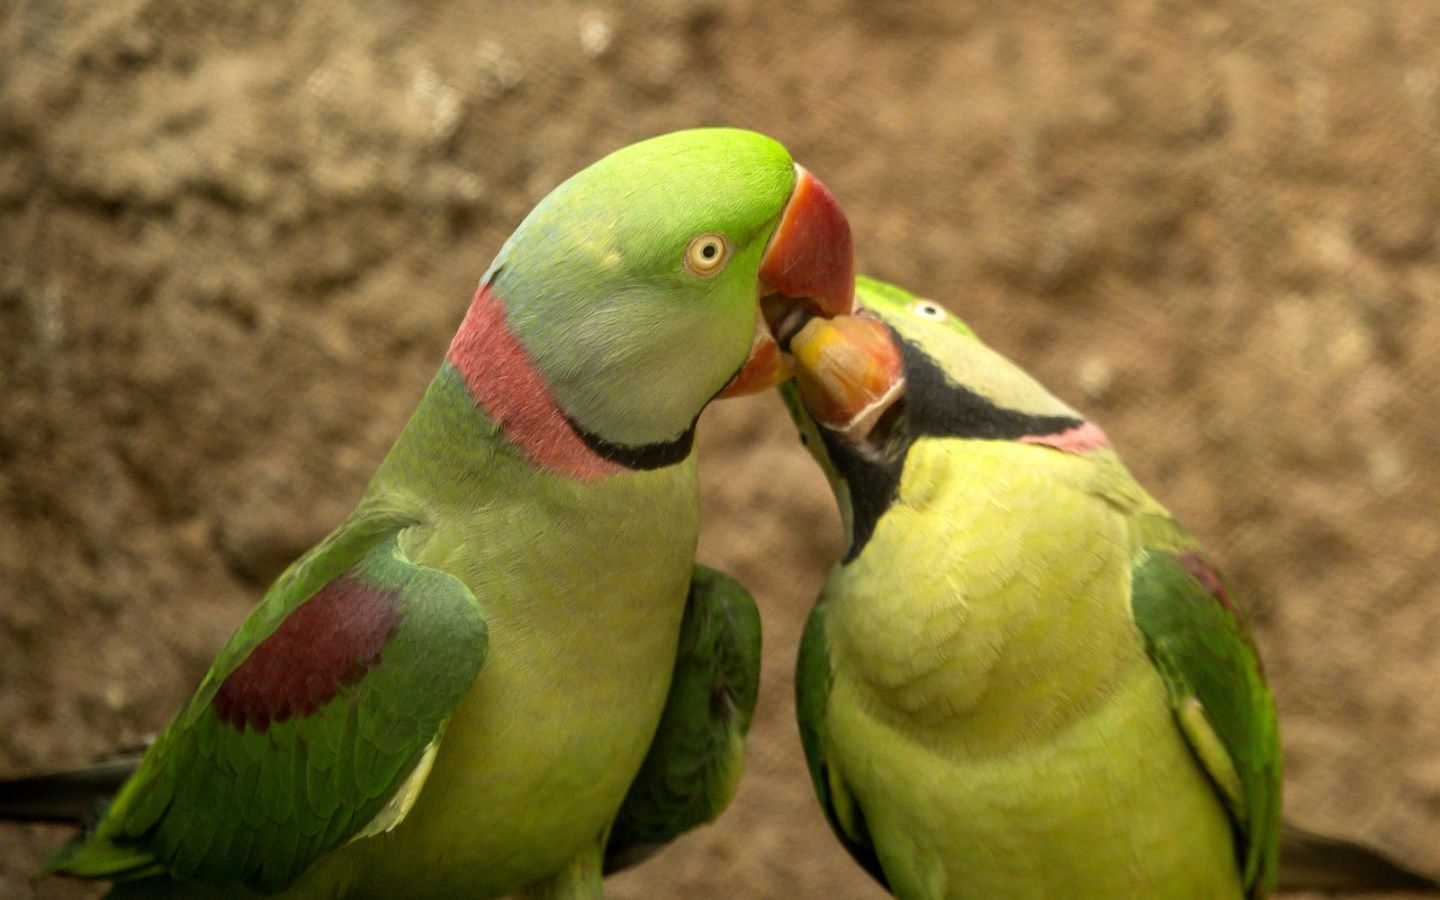 Parrot Birds Zoo Wildlife Photography HD Wallpaper and Background 1440x900